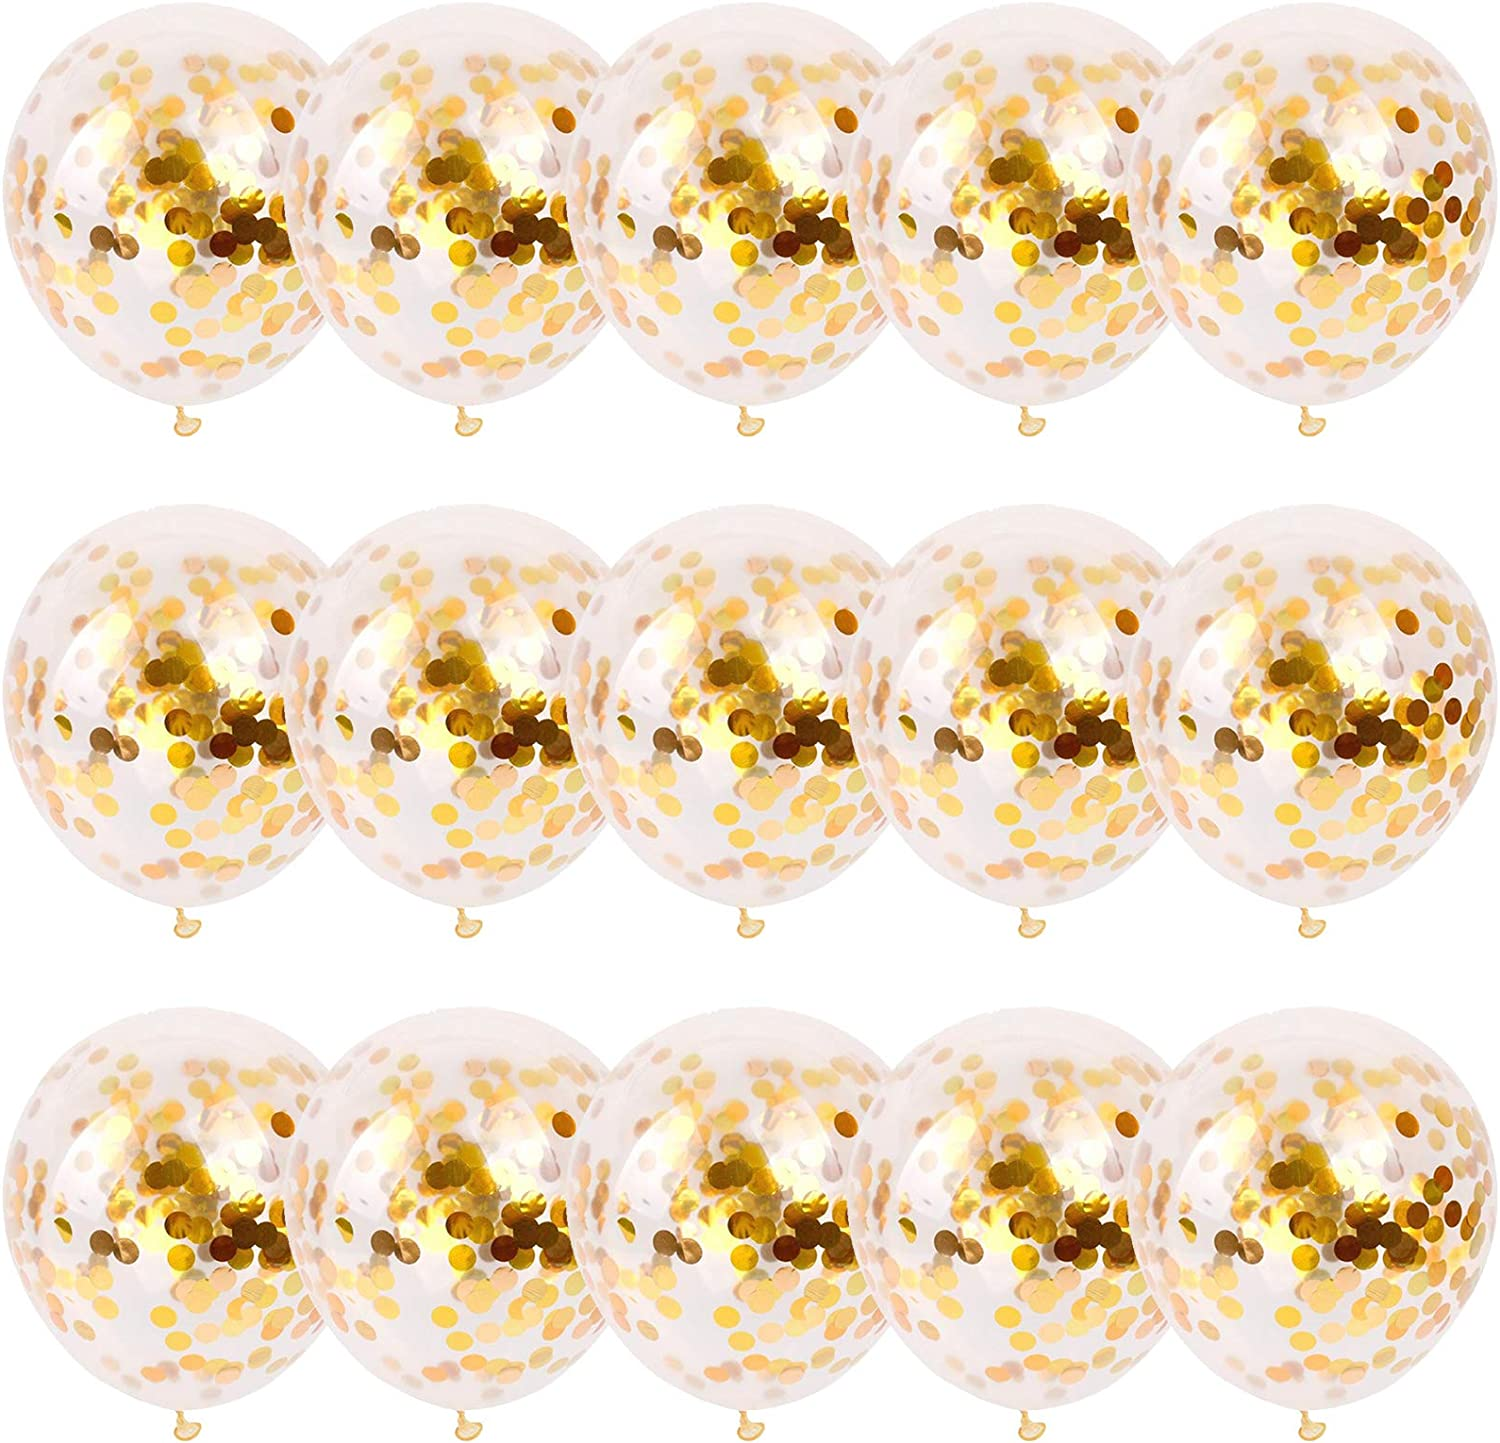 40pcs Gold Confetti Balloons,12 Inch Shining Gold Balloons with